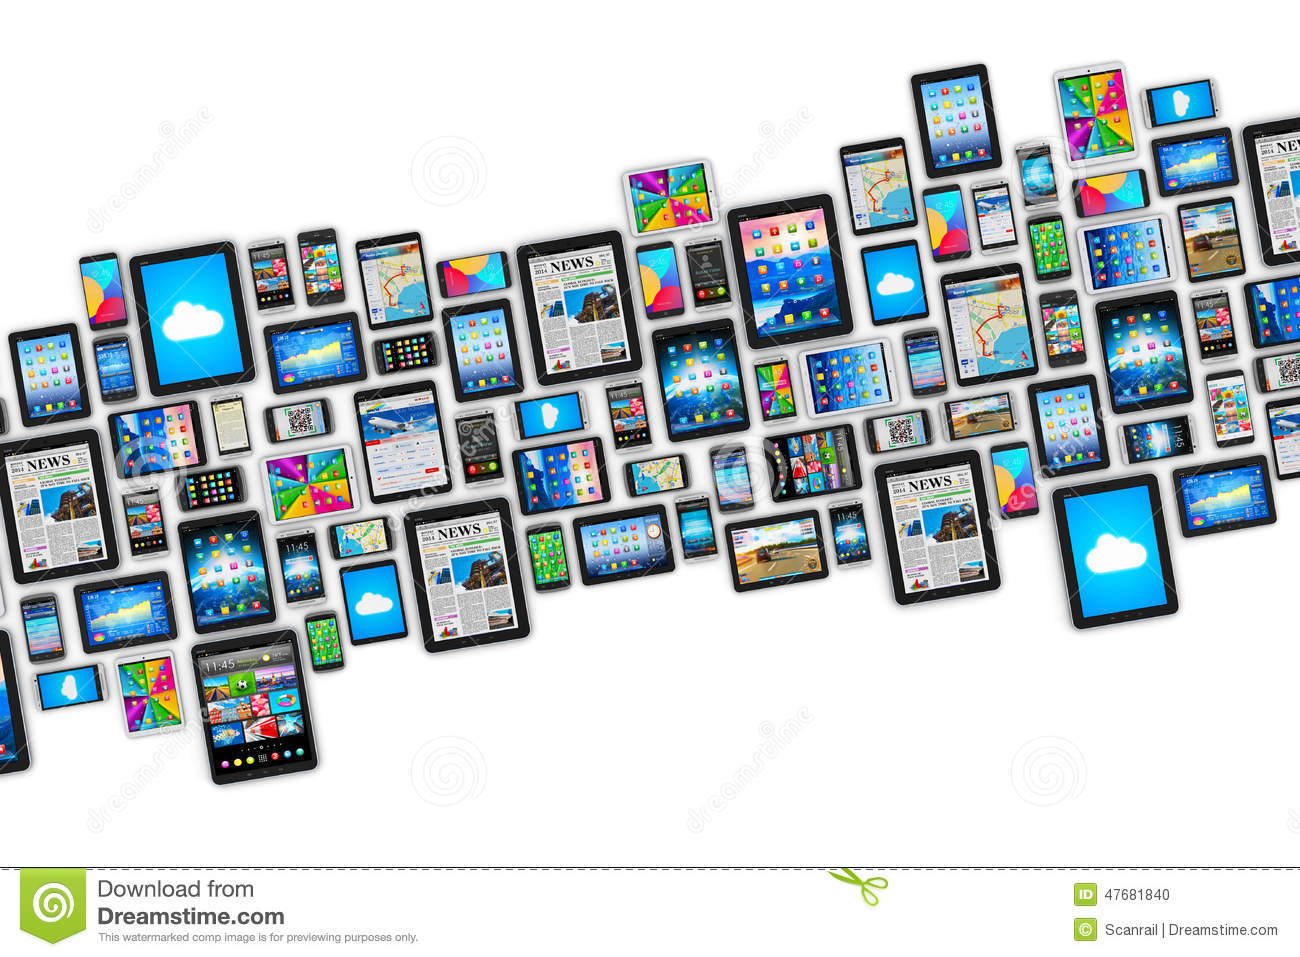 devices digital mobile technology computer communication wireless mobility creative business abstract illustration